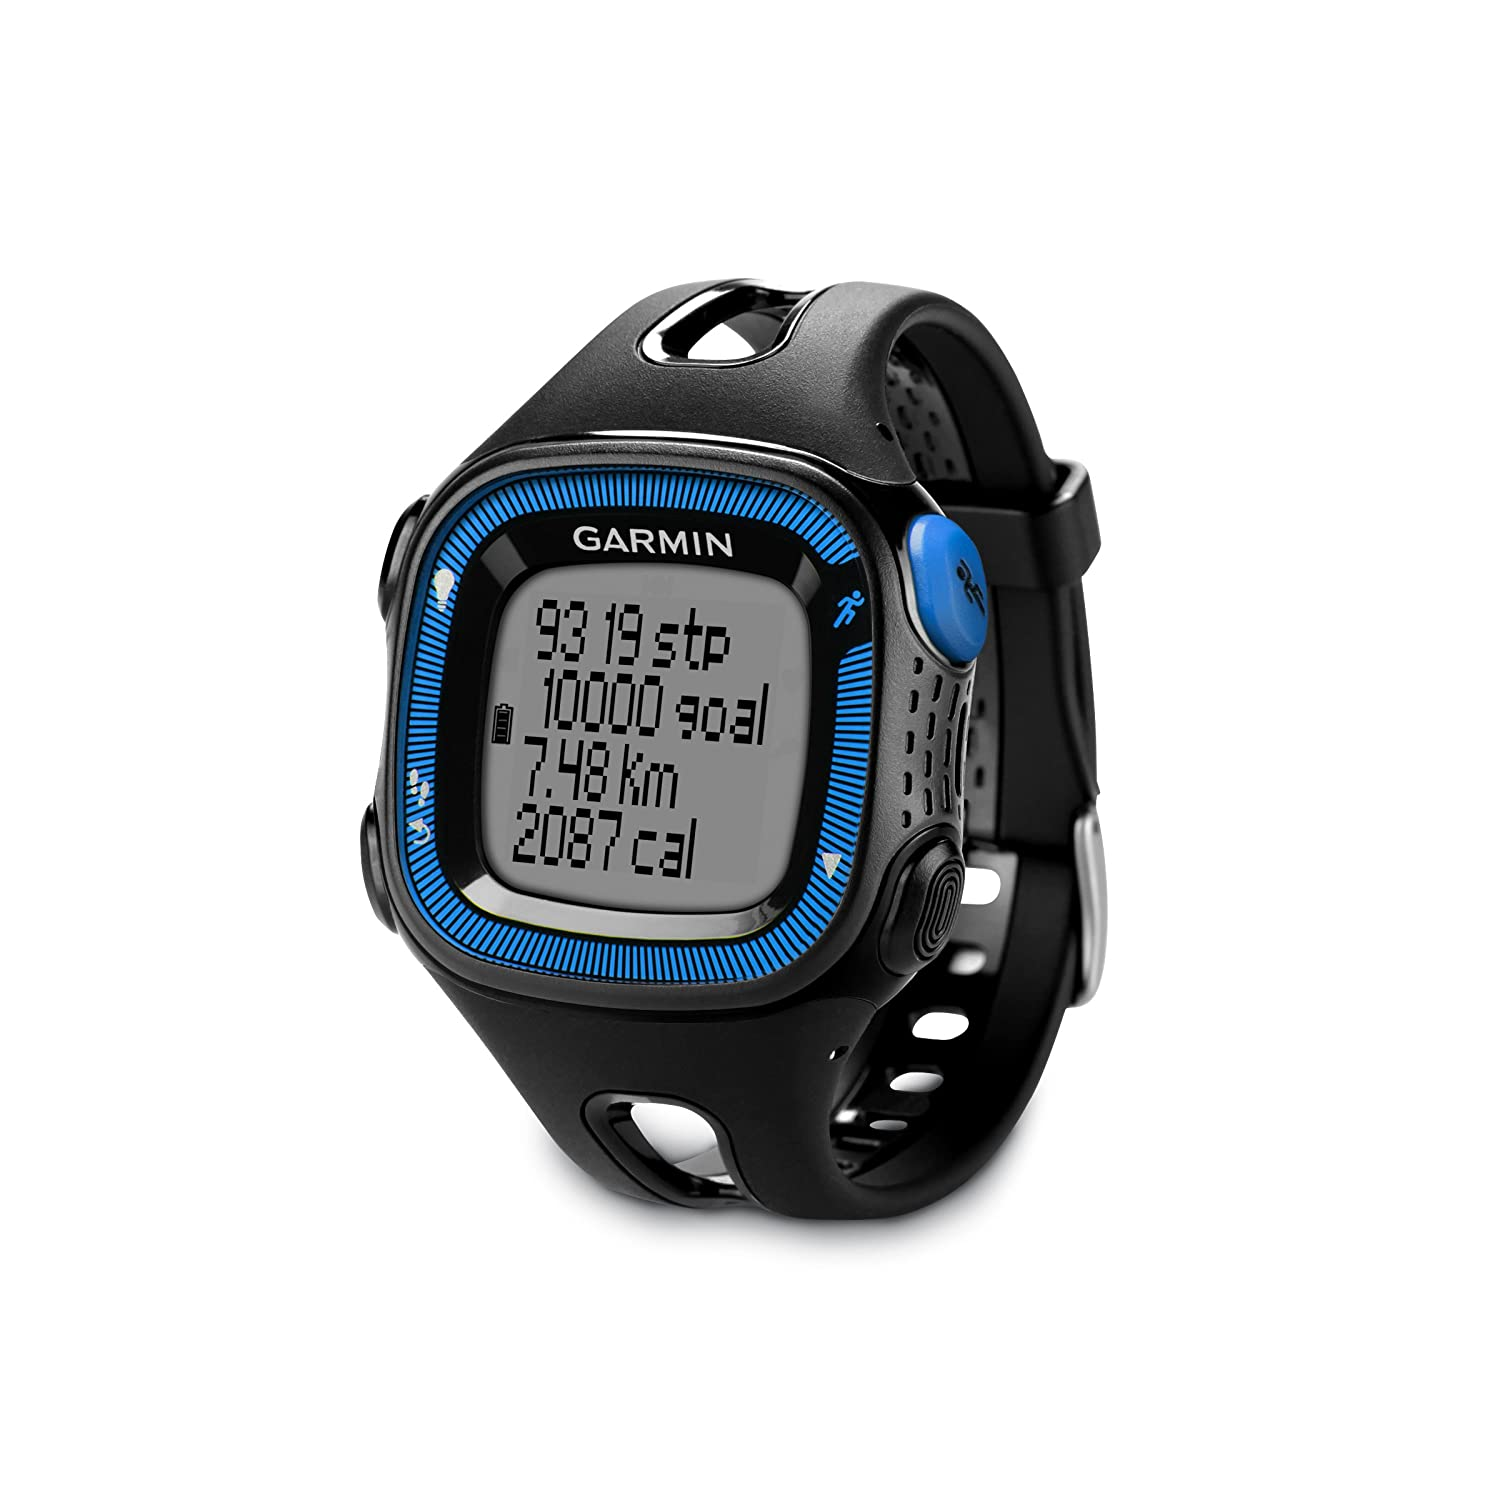 Garmin Forerunner 15 Large, Black/Blue (Certified Refurbished)